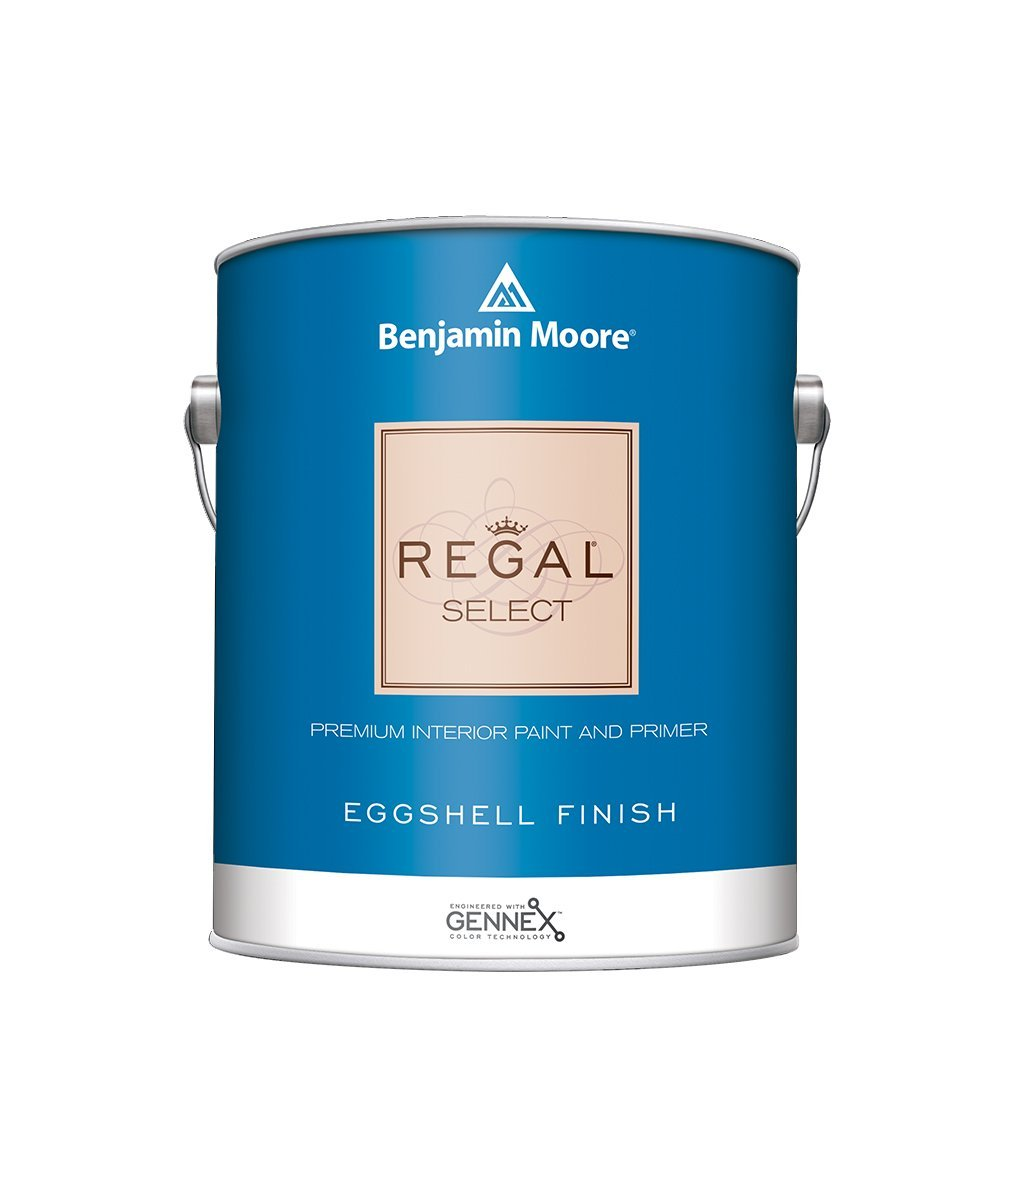 Benjamin Moore Regal Select Eggshell Paint available at Mallory Paint Stores.